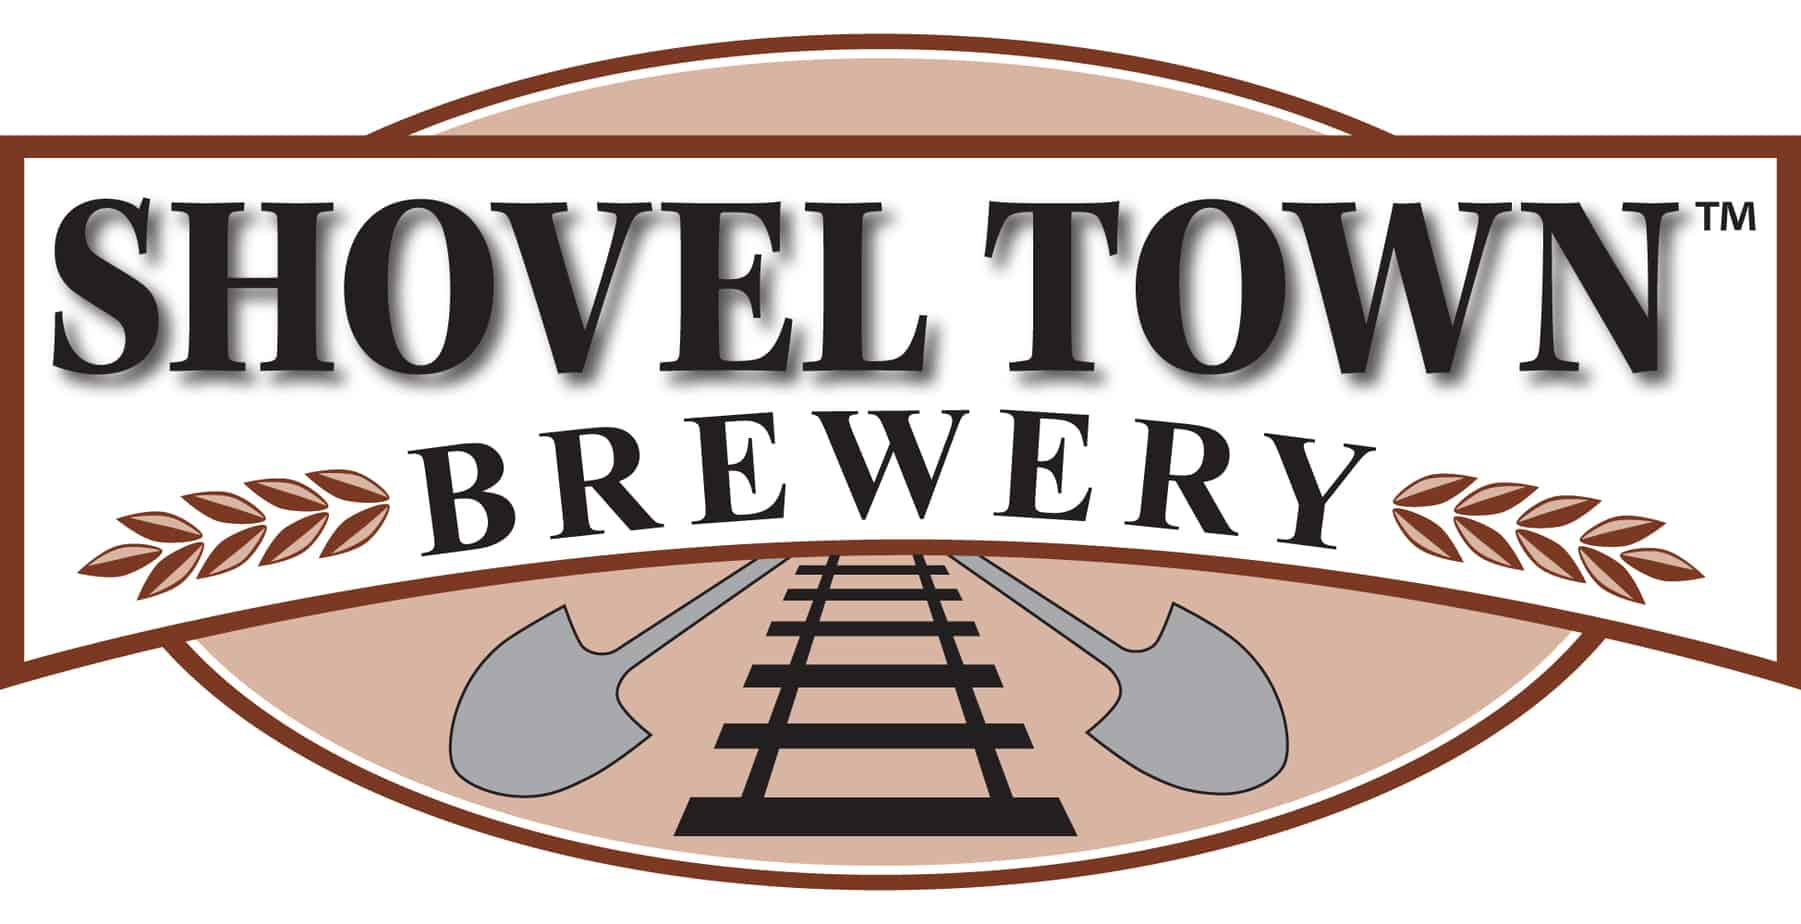 Shovel Town Brewery, Easton, MA